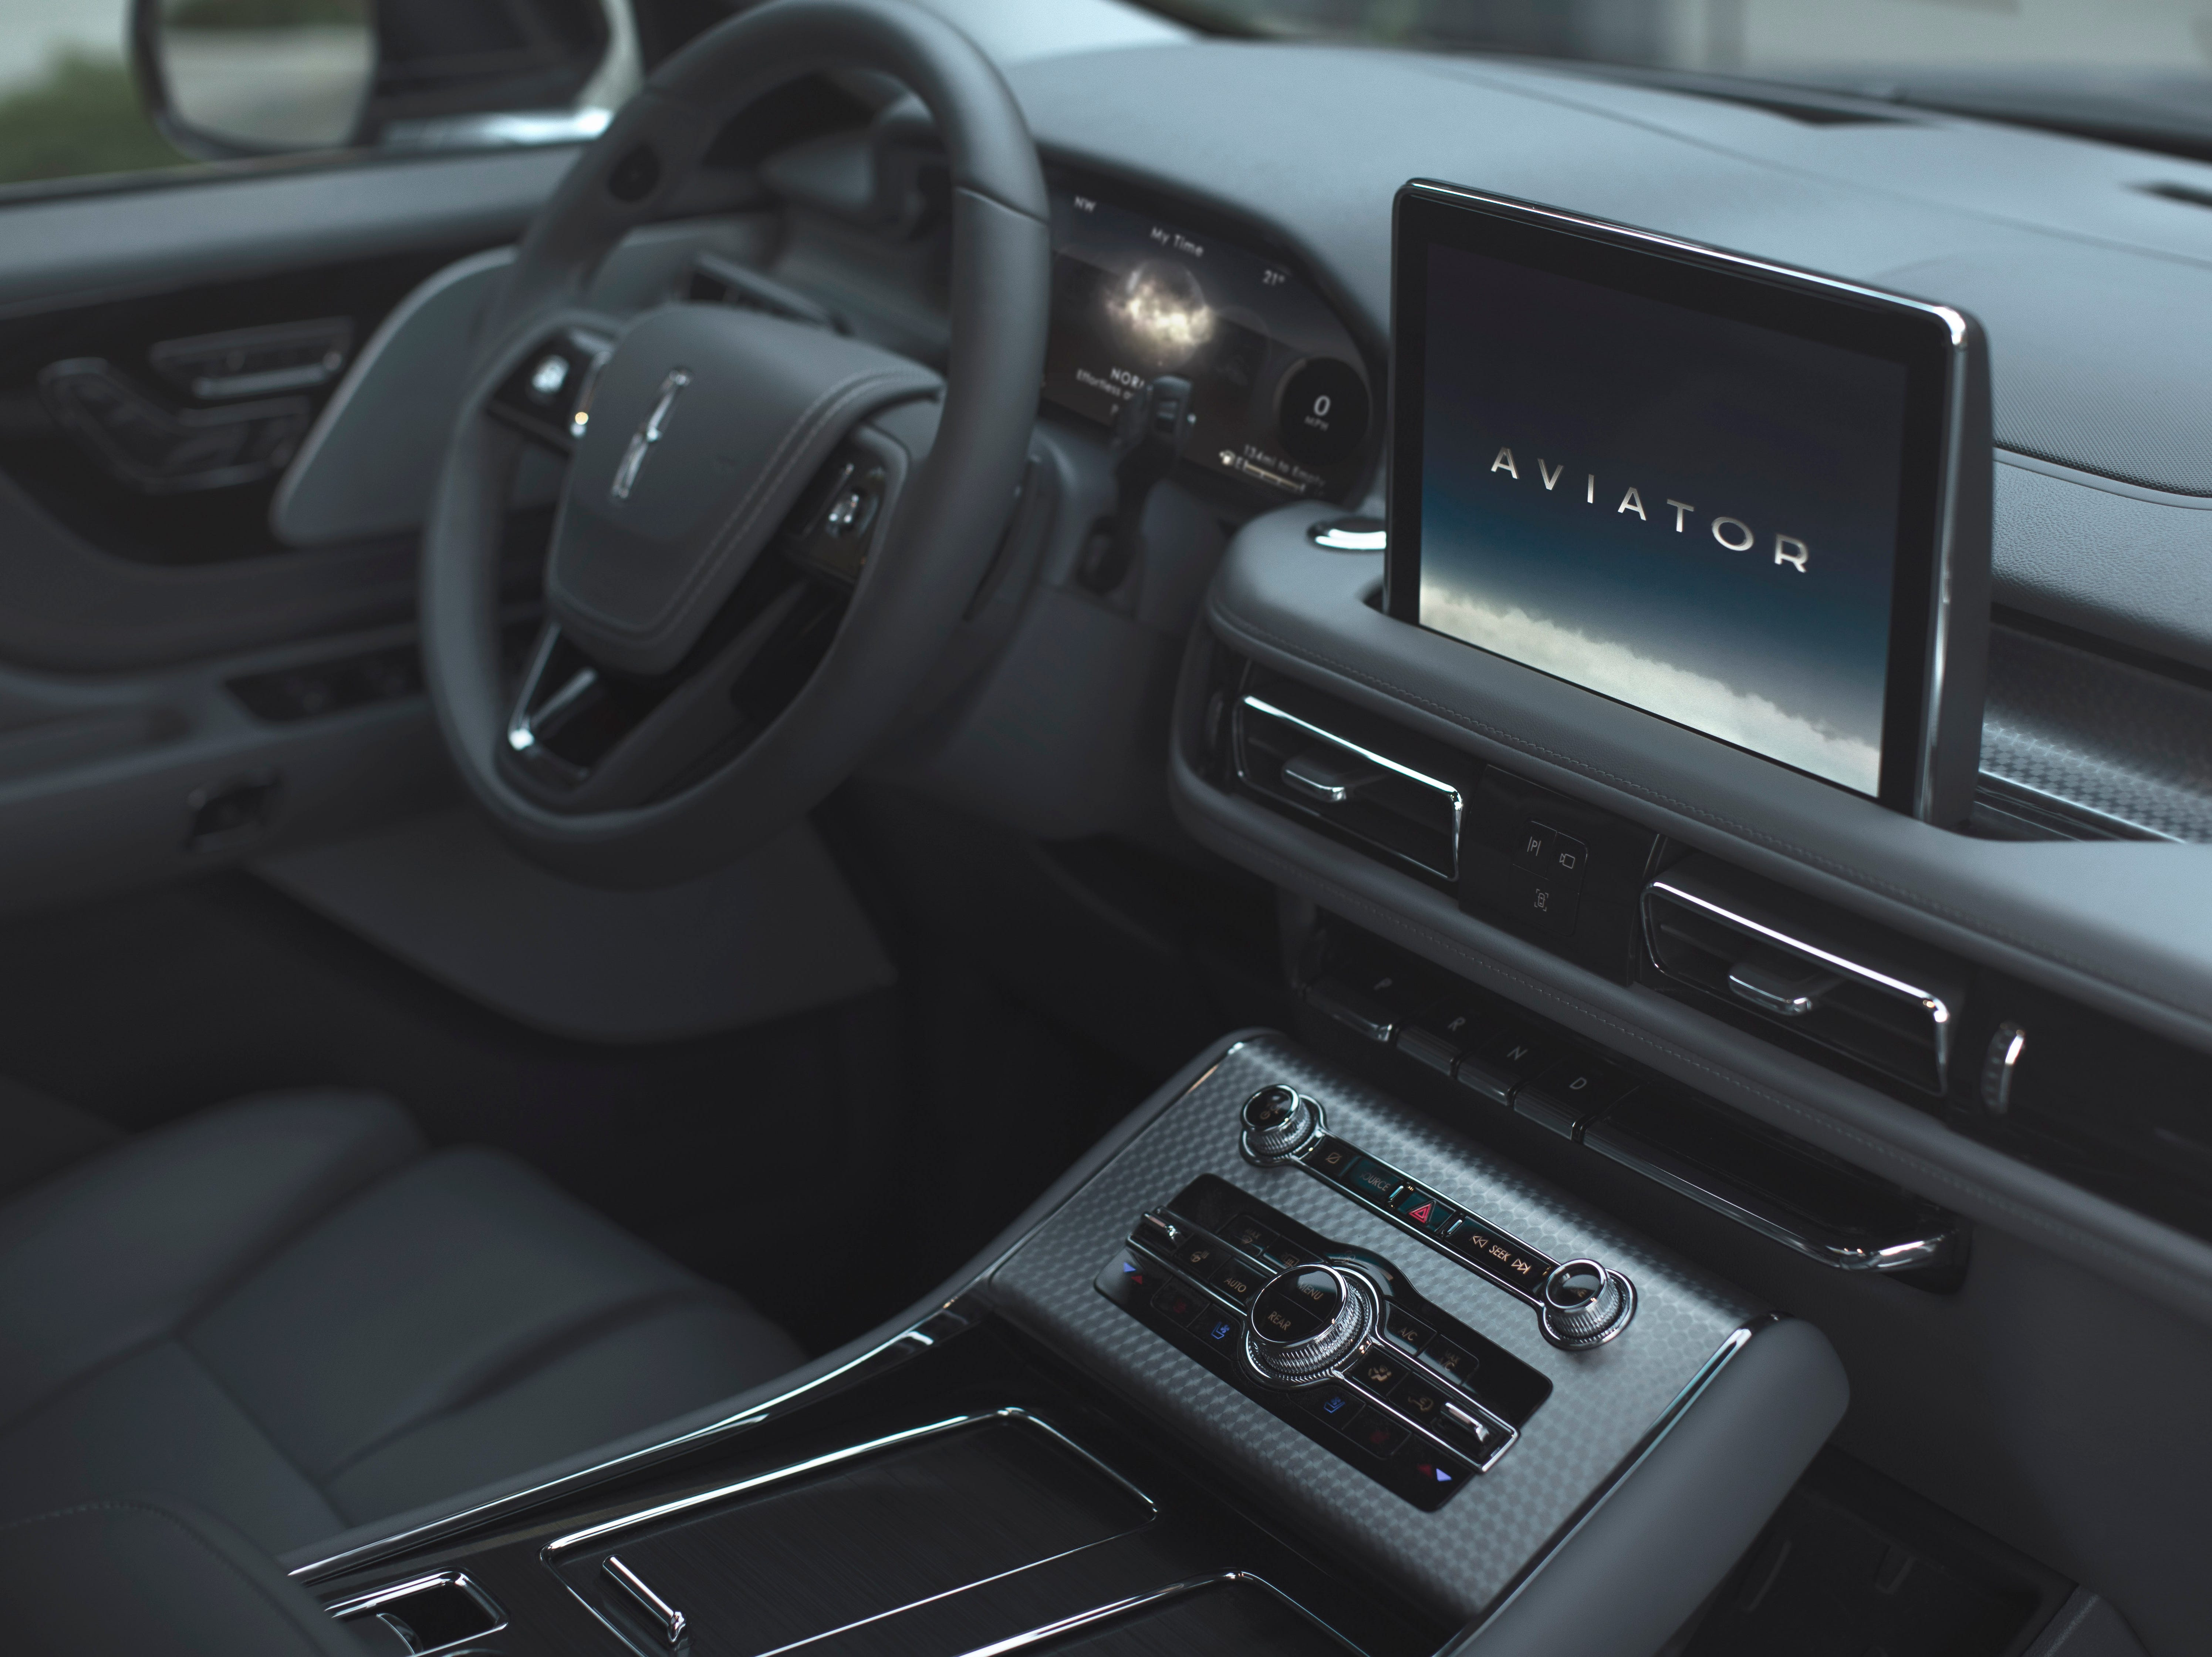 The all-new 2020 Lincoln Aviator has a 12.3-inch, fully digital instrument display, 10.5-inch console touchscreen, optional, signature 30-way seats, and individual rotary knobs for audio, climate control, and drive modes.